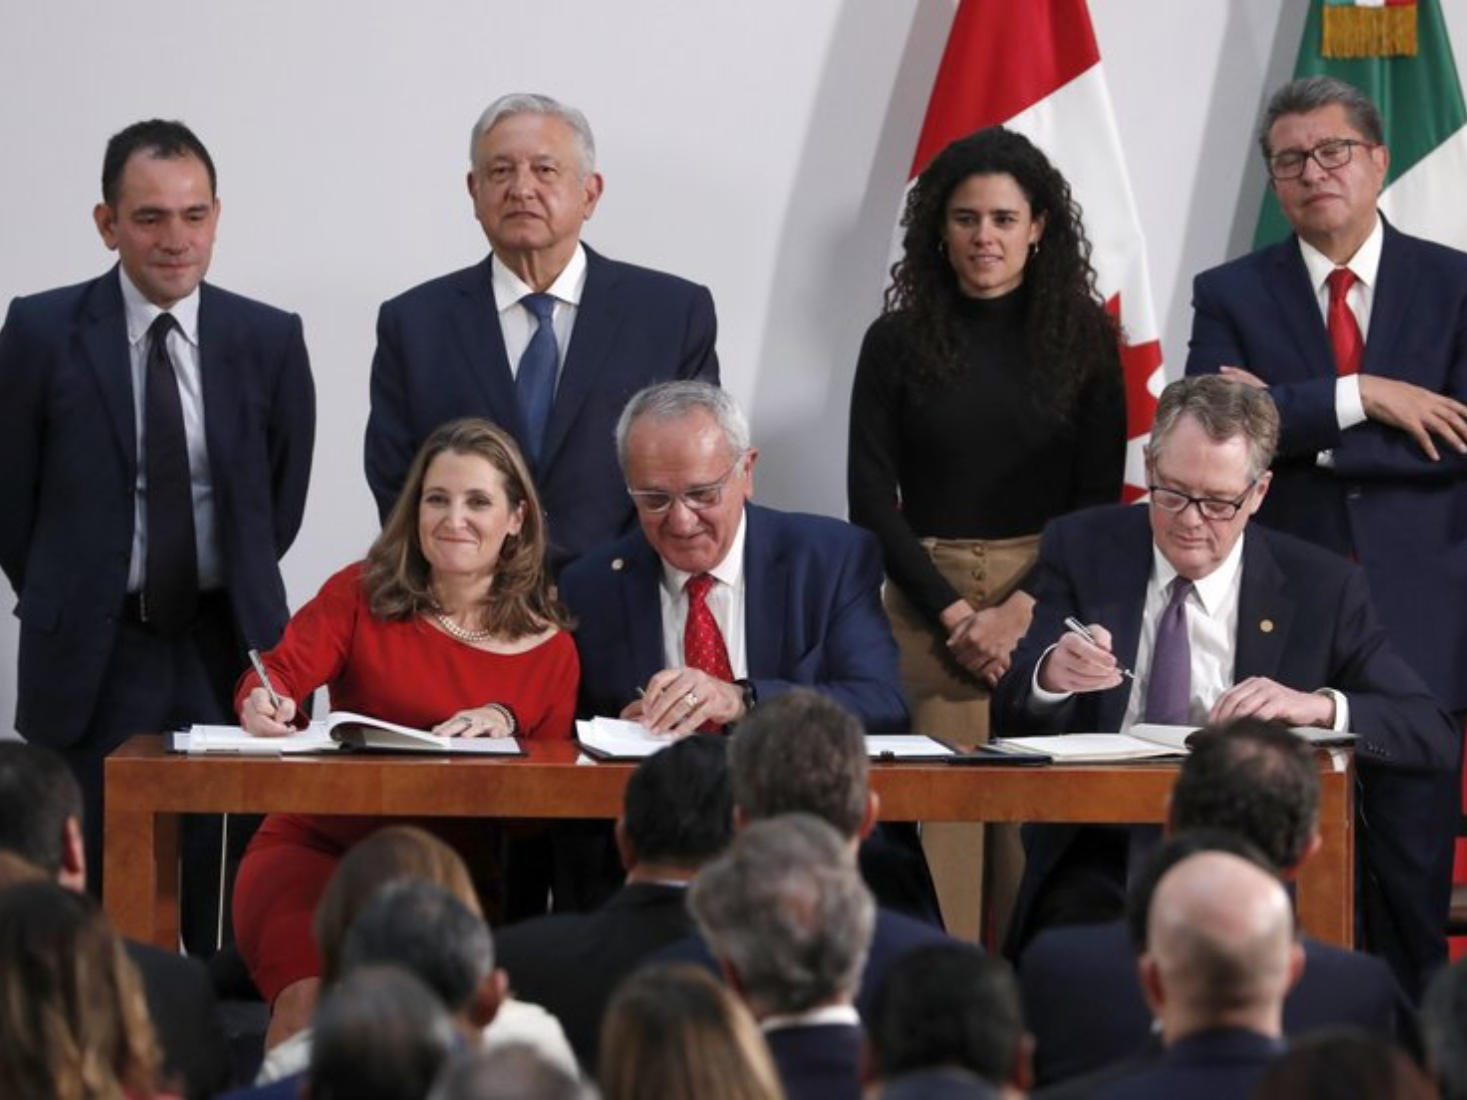 Mexico reaffirms rejection of US labor inspectors